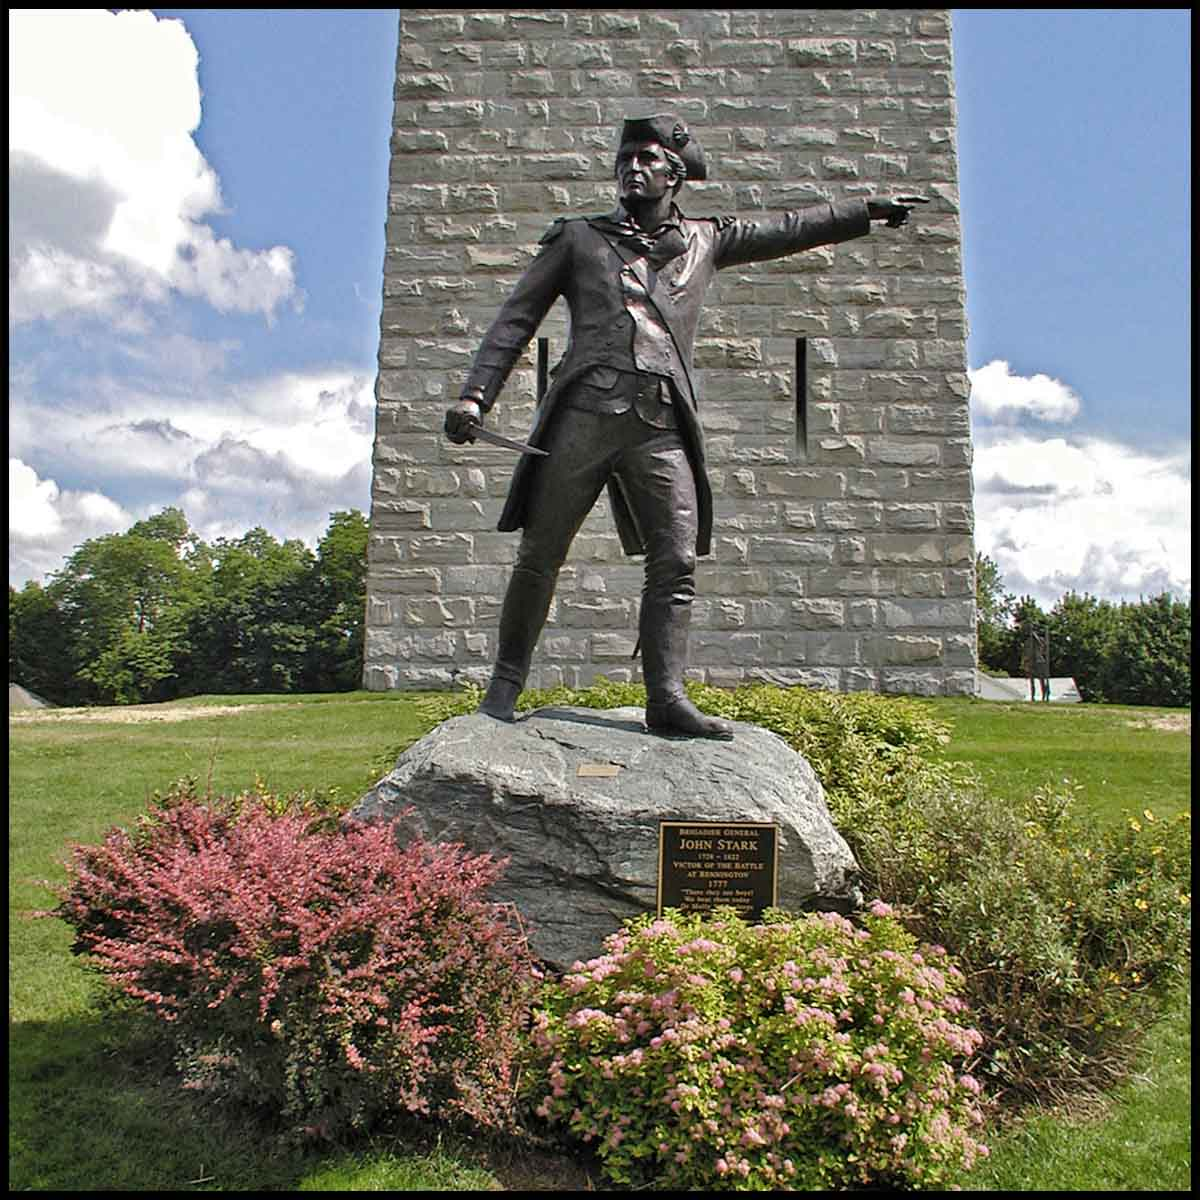 exterior photo of bronze sculpture of John Stark pointing with outstretched arm and standing on rock surrounded by shrubs in front of a obelisk-type monument